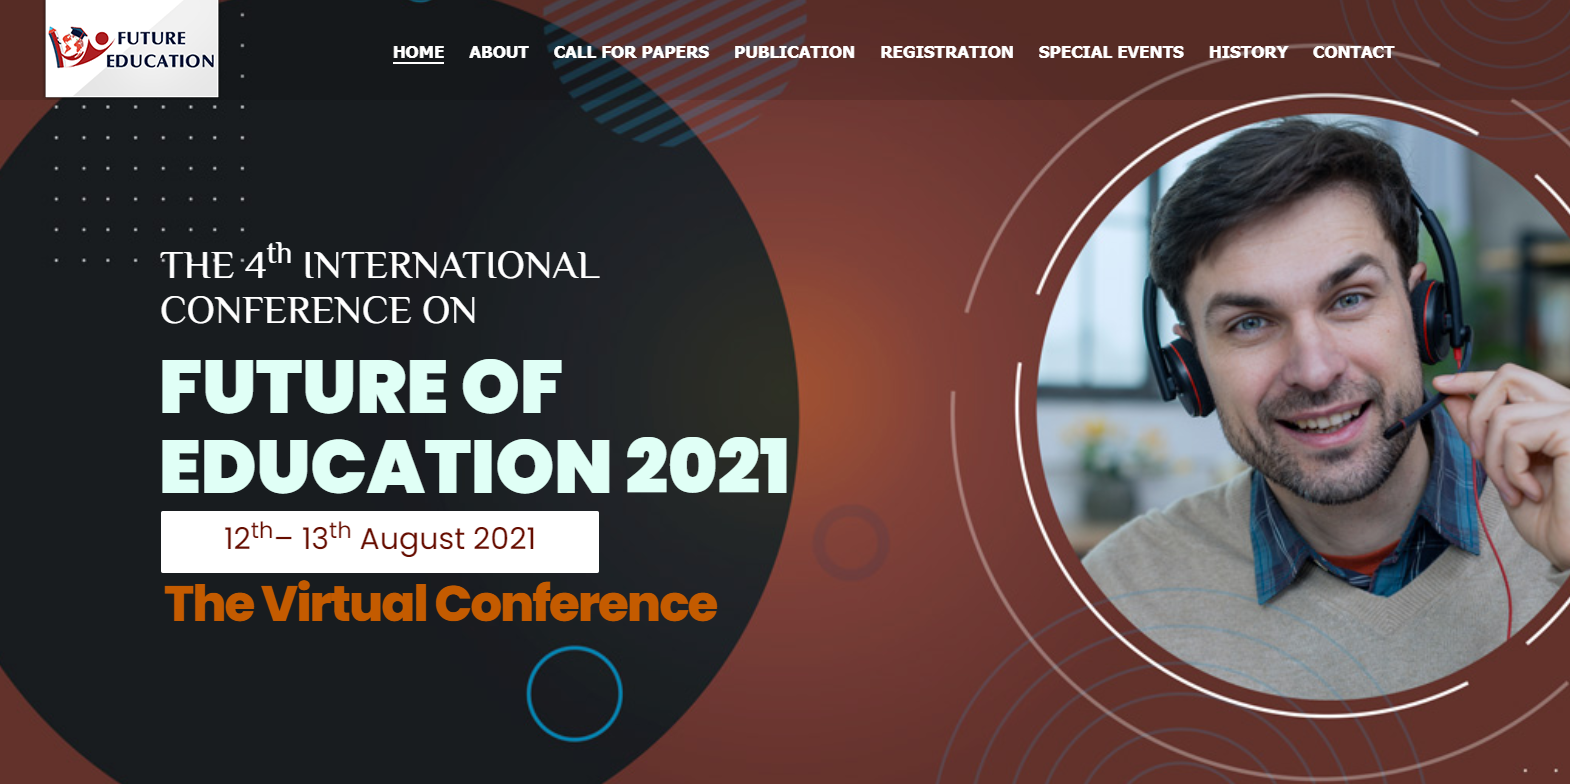 4th International Conference on Future of Education 2021 (special rates for ITB participants)